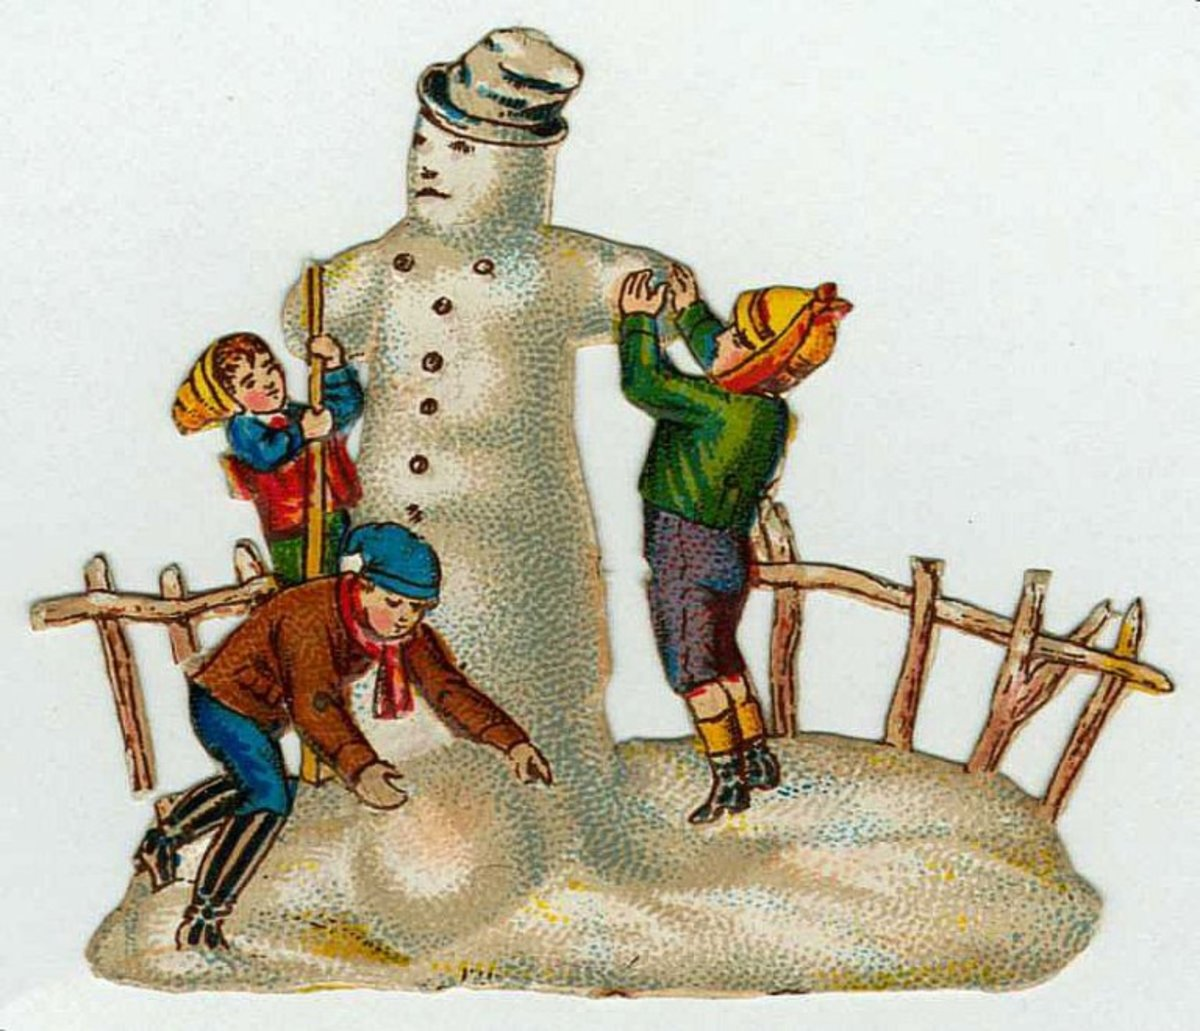 Children and snowman vintage Christmas image